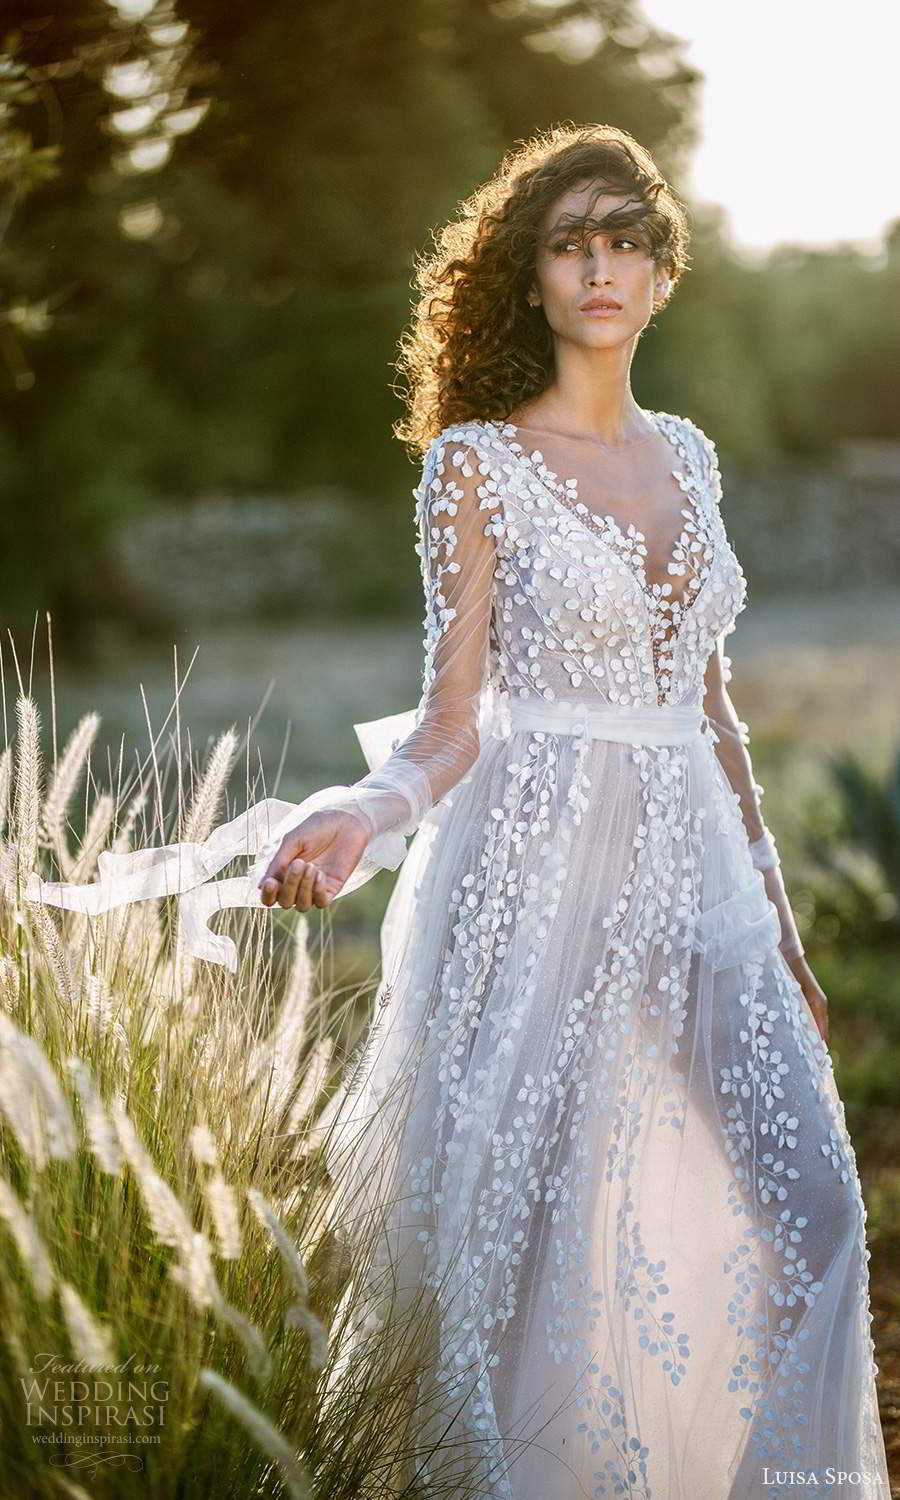 luisa sposa 2021 bridal sheer long sleeves plunging v neckline fully embellished romantic a line ball gownw wedding dress (2) sv